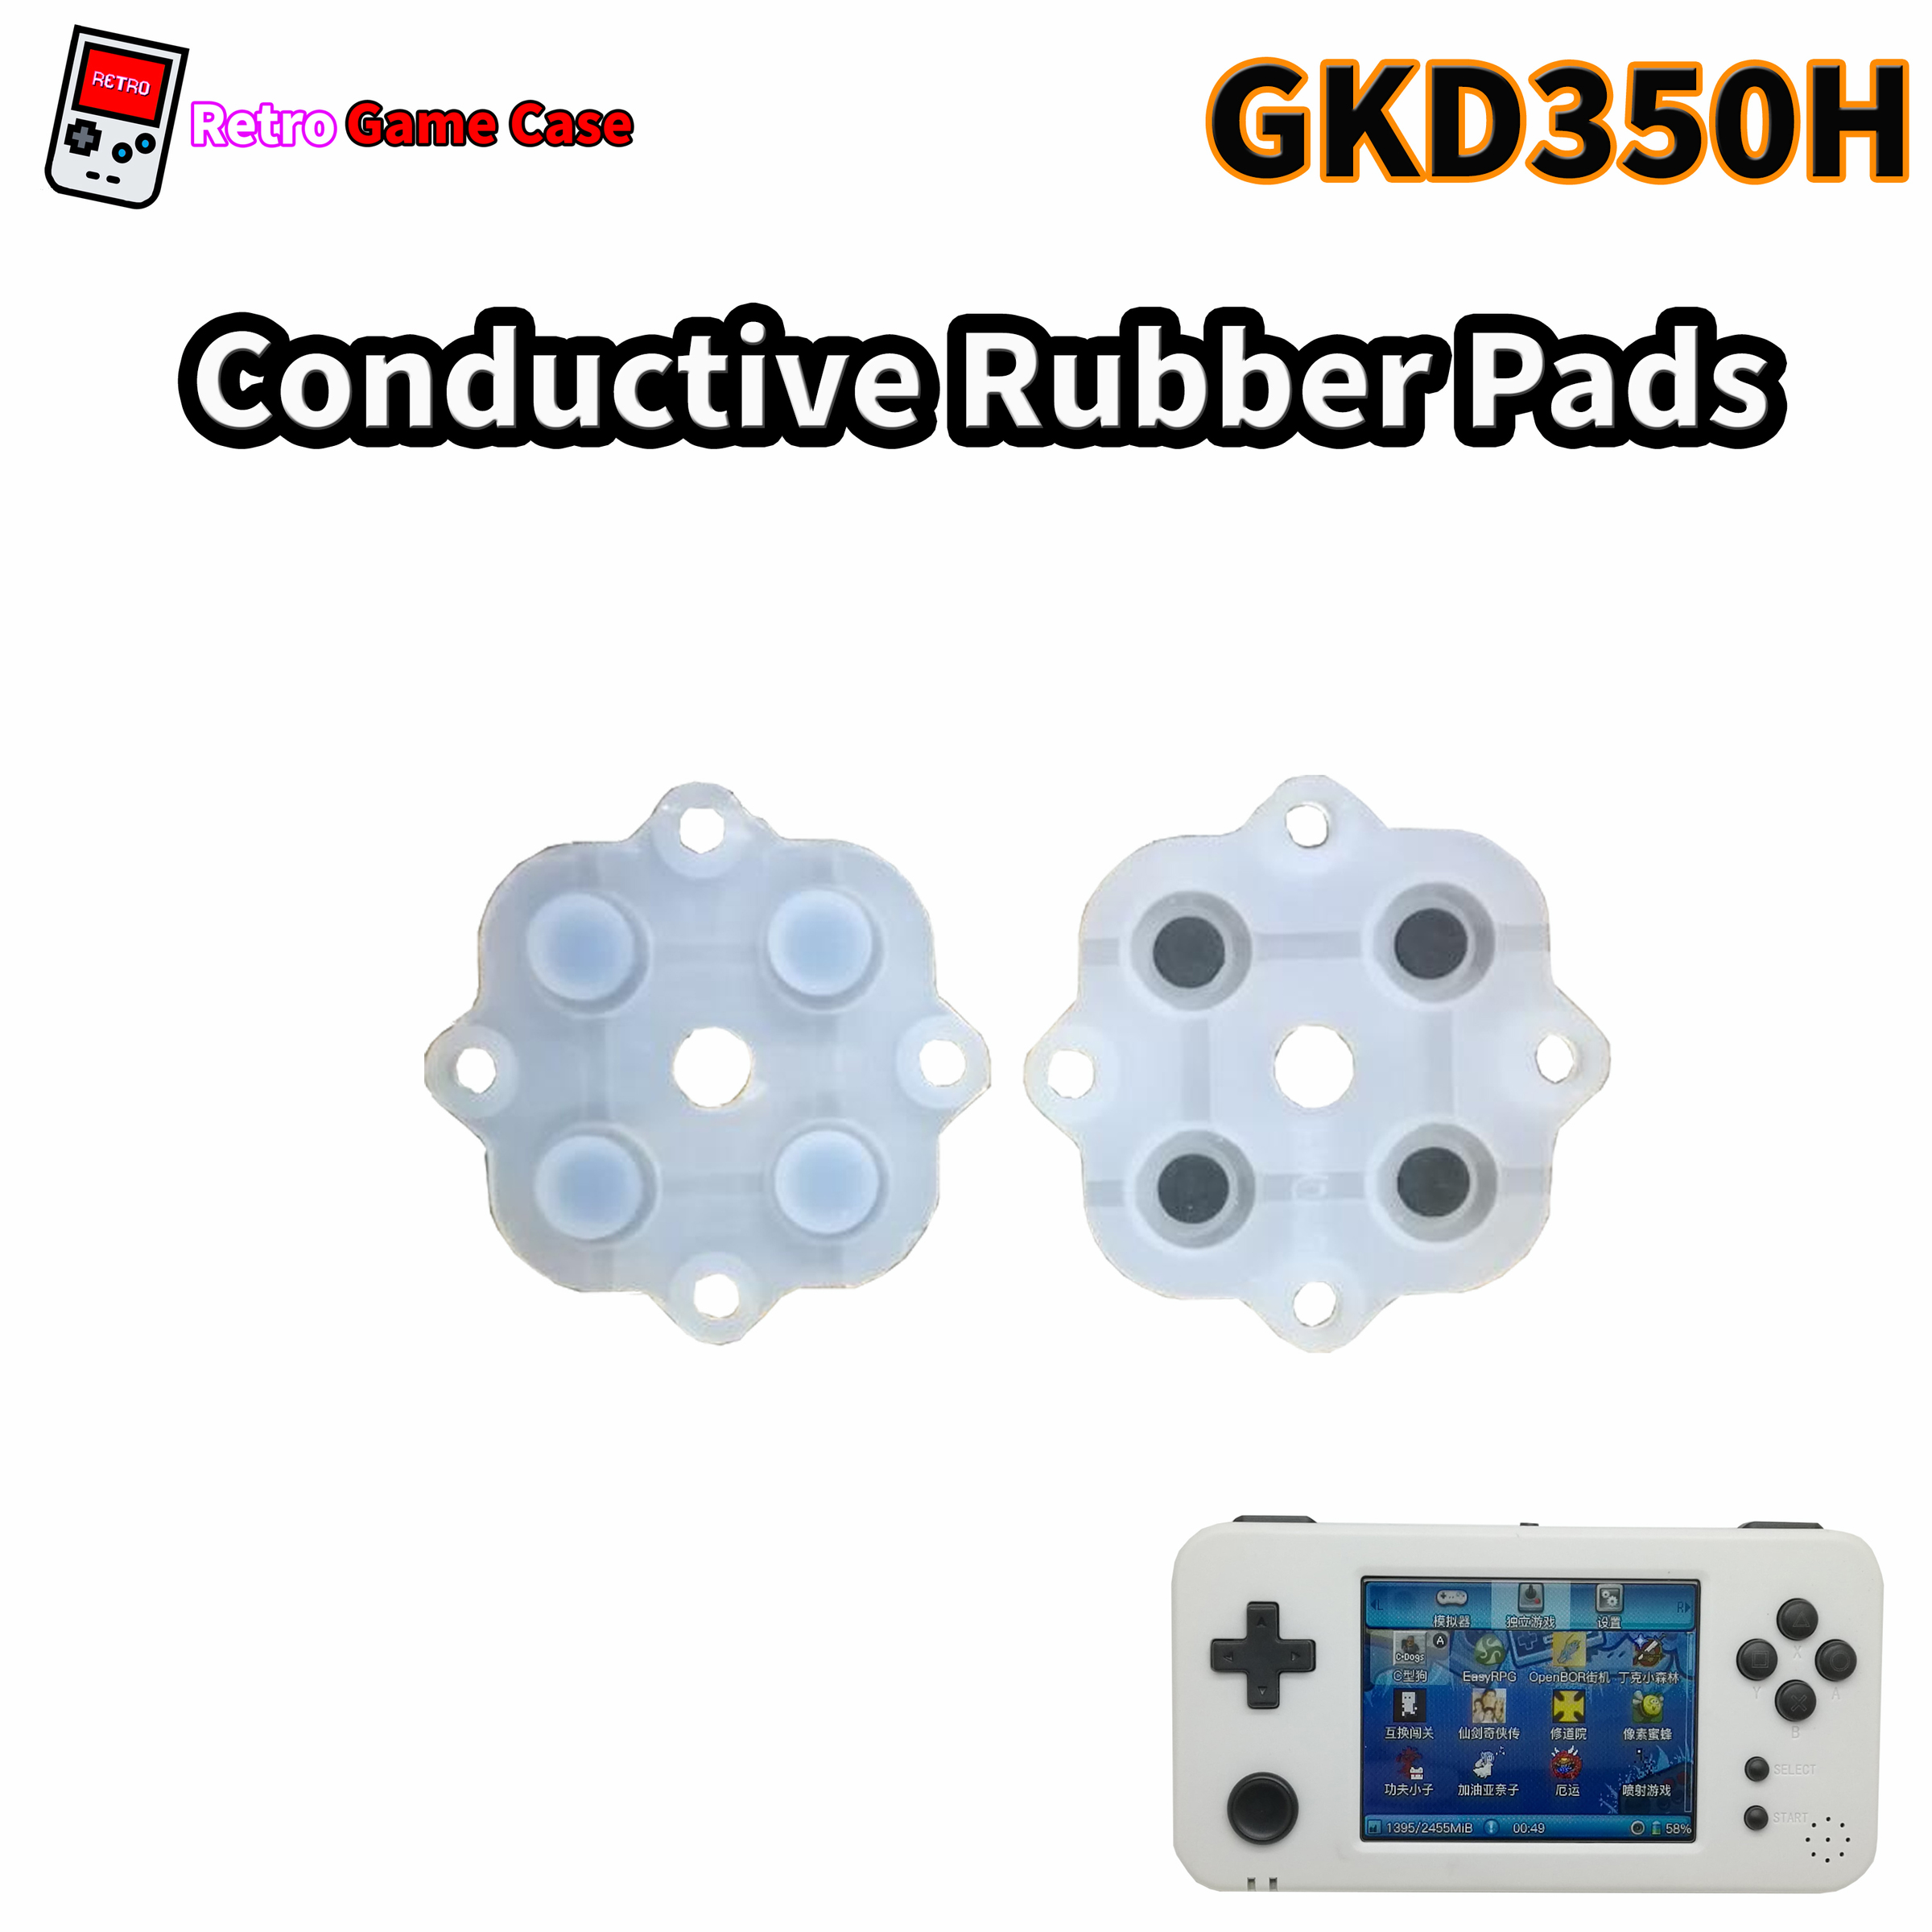 My_retro_game_case_GKD350H_Conductive_Rubber_pads.jpg